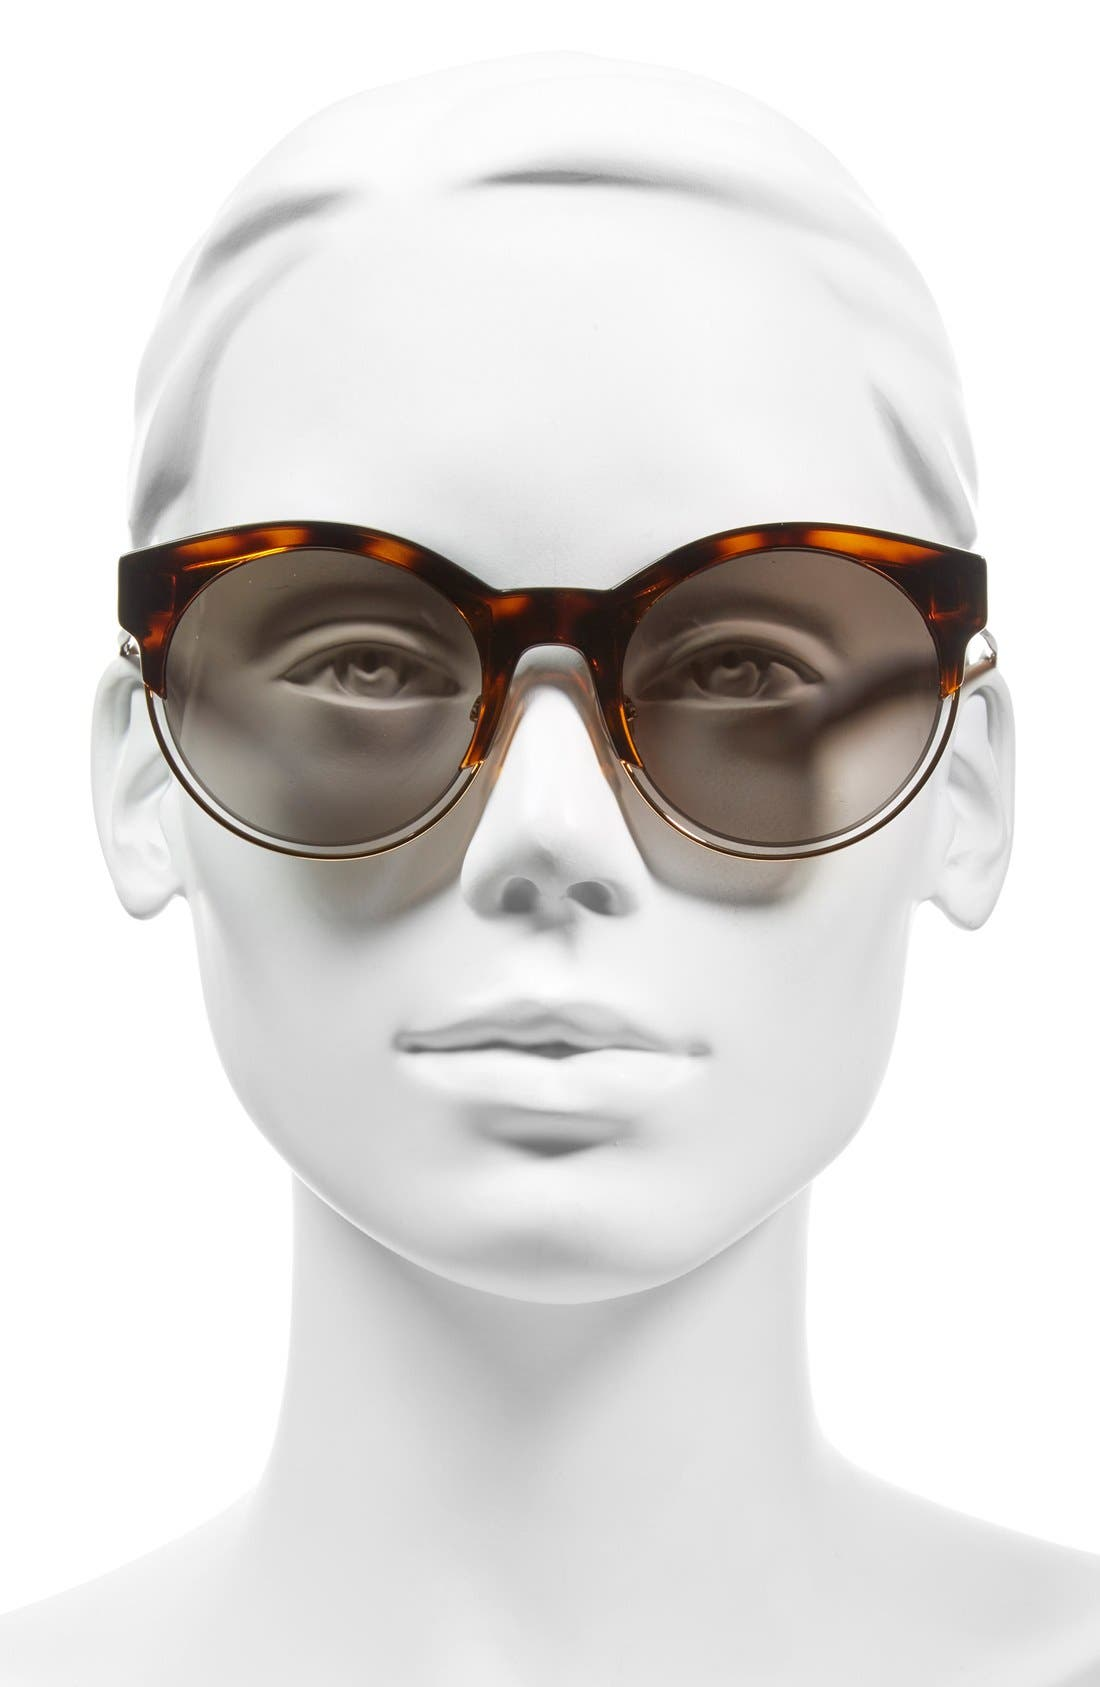 Siderall 1 53mm Round Sunglasses,                             Alternate thumbnail 14, color,